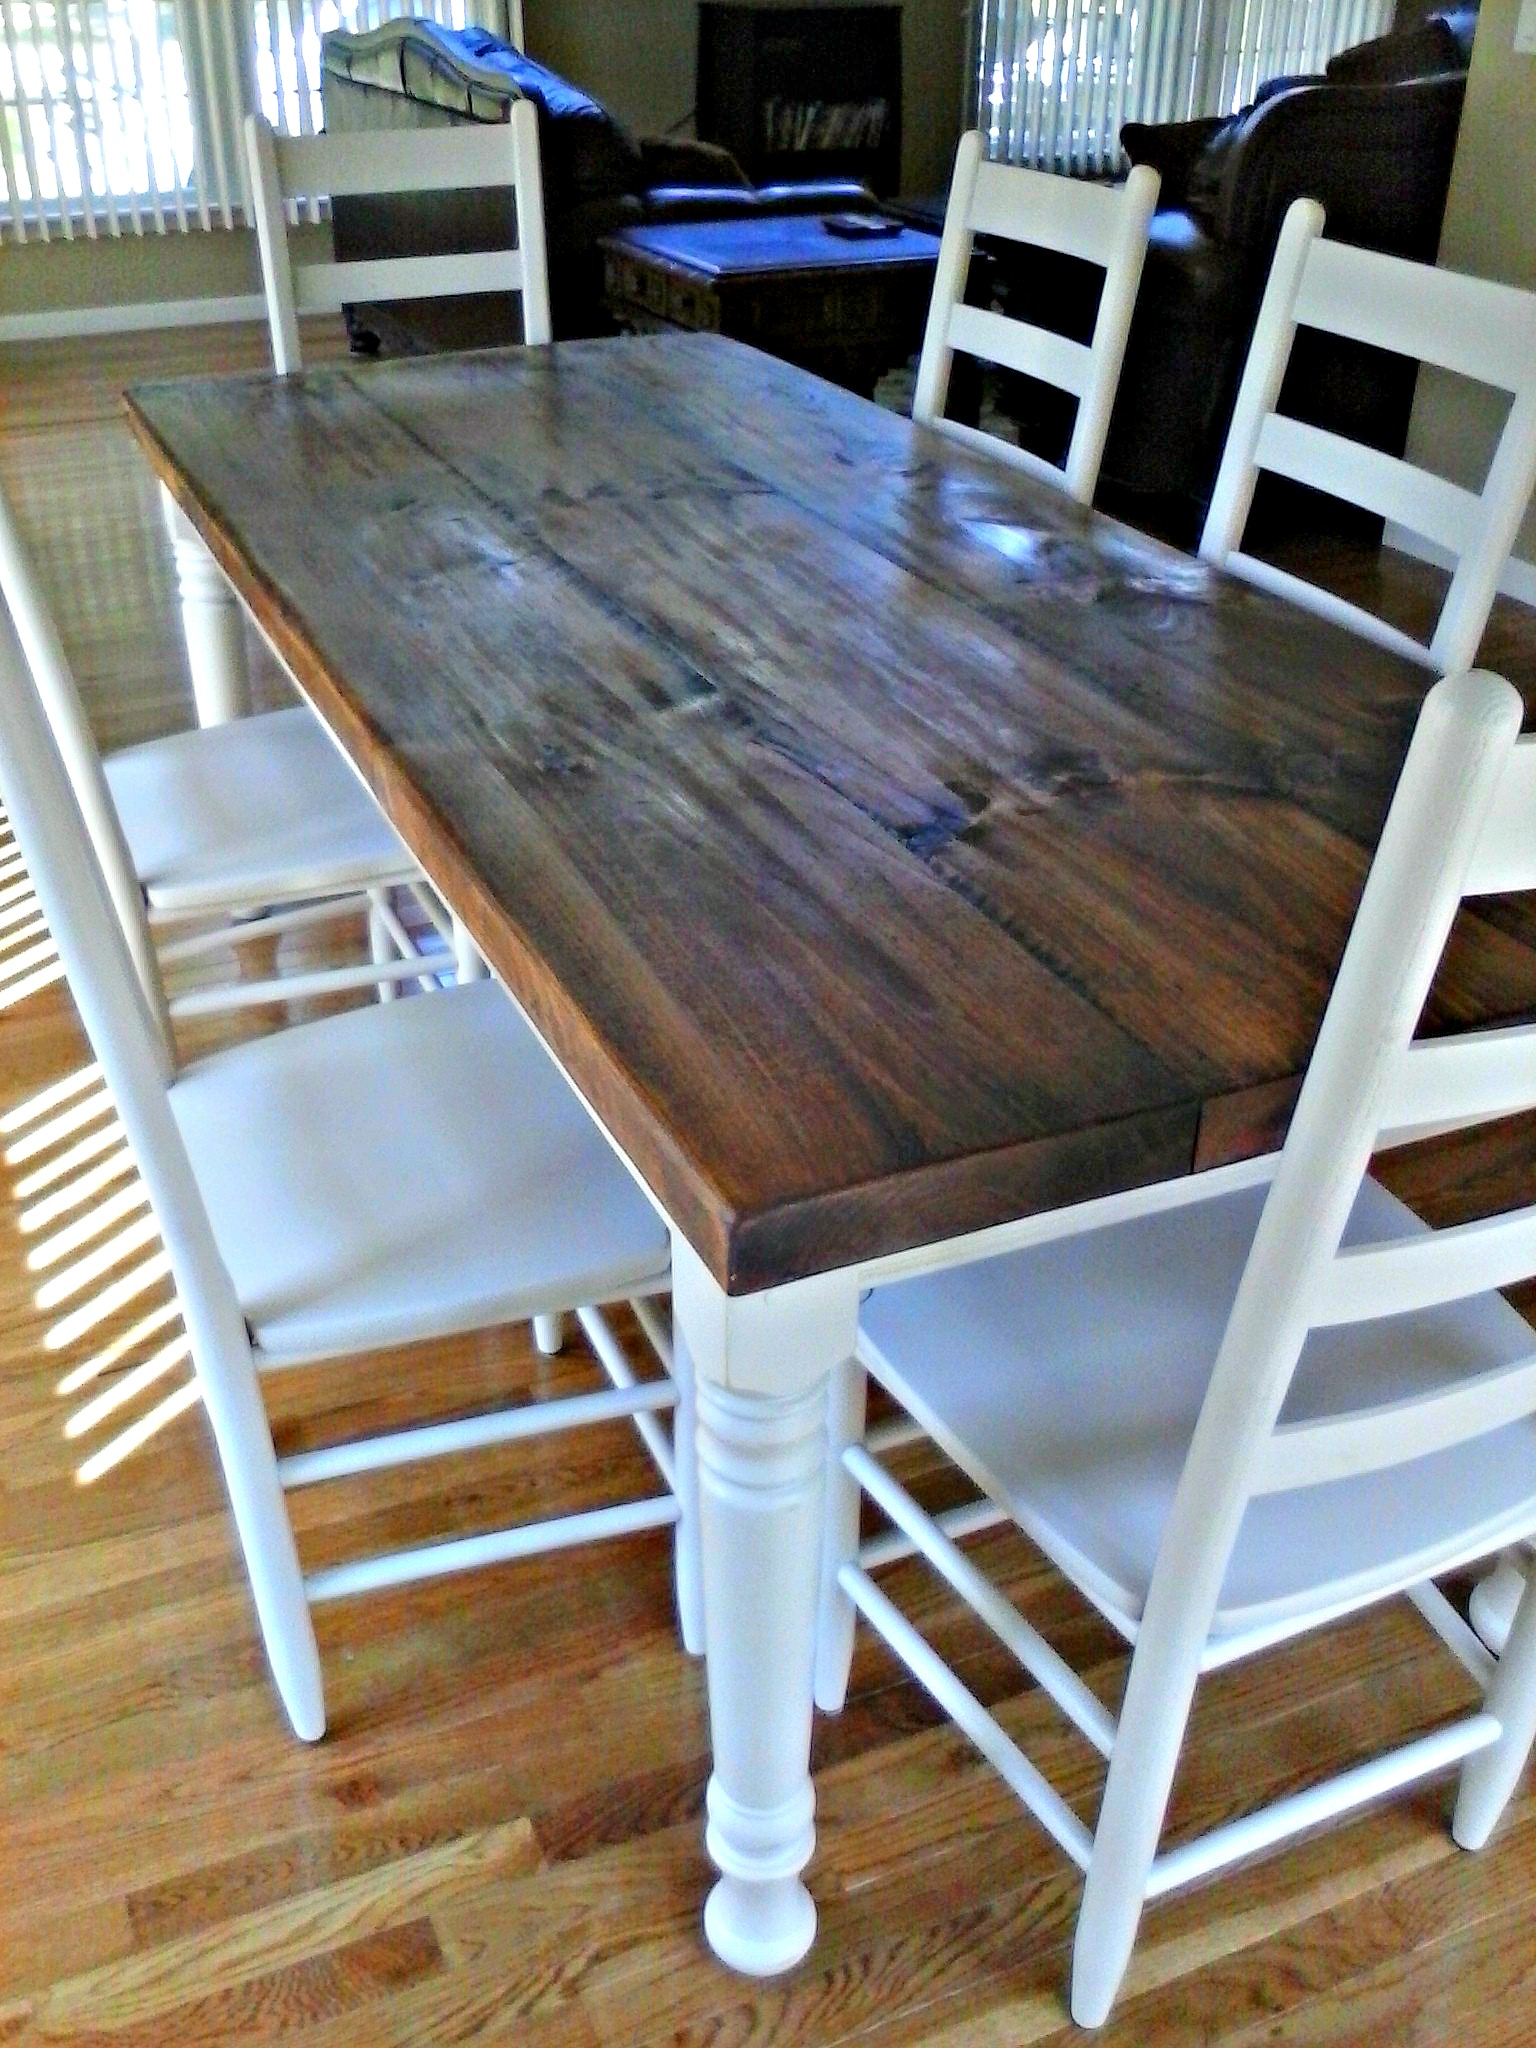 Farmhouse Table Company Painted Legs The New England Farm Table Co